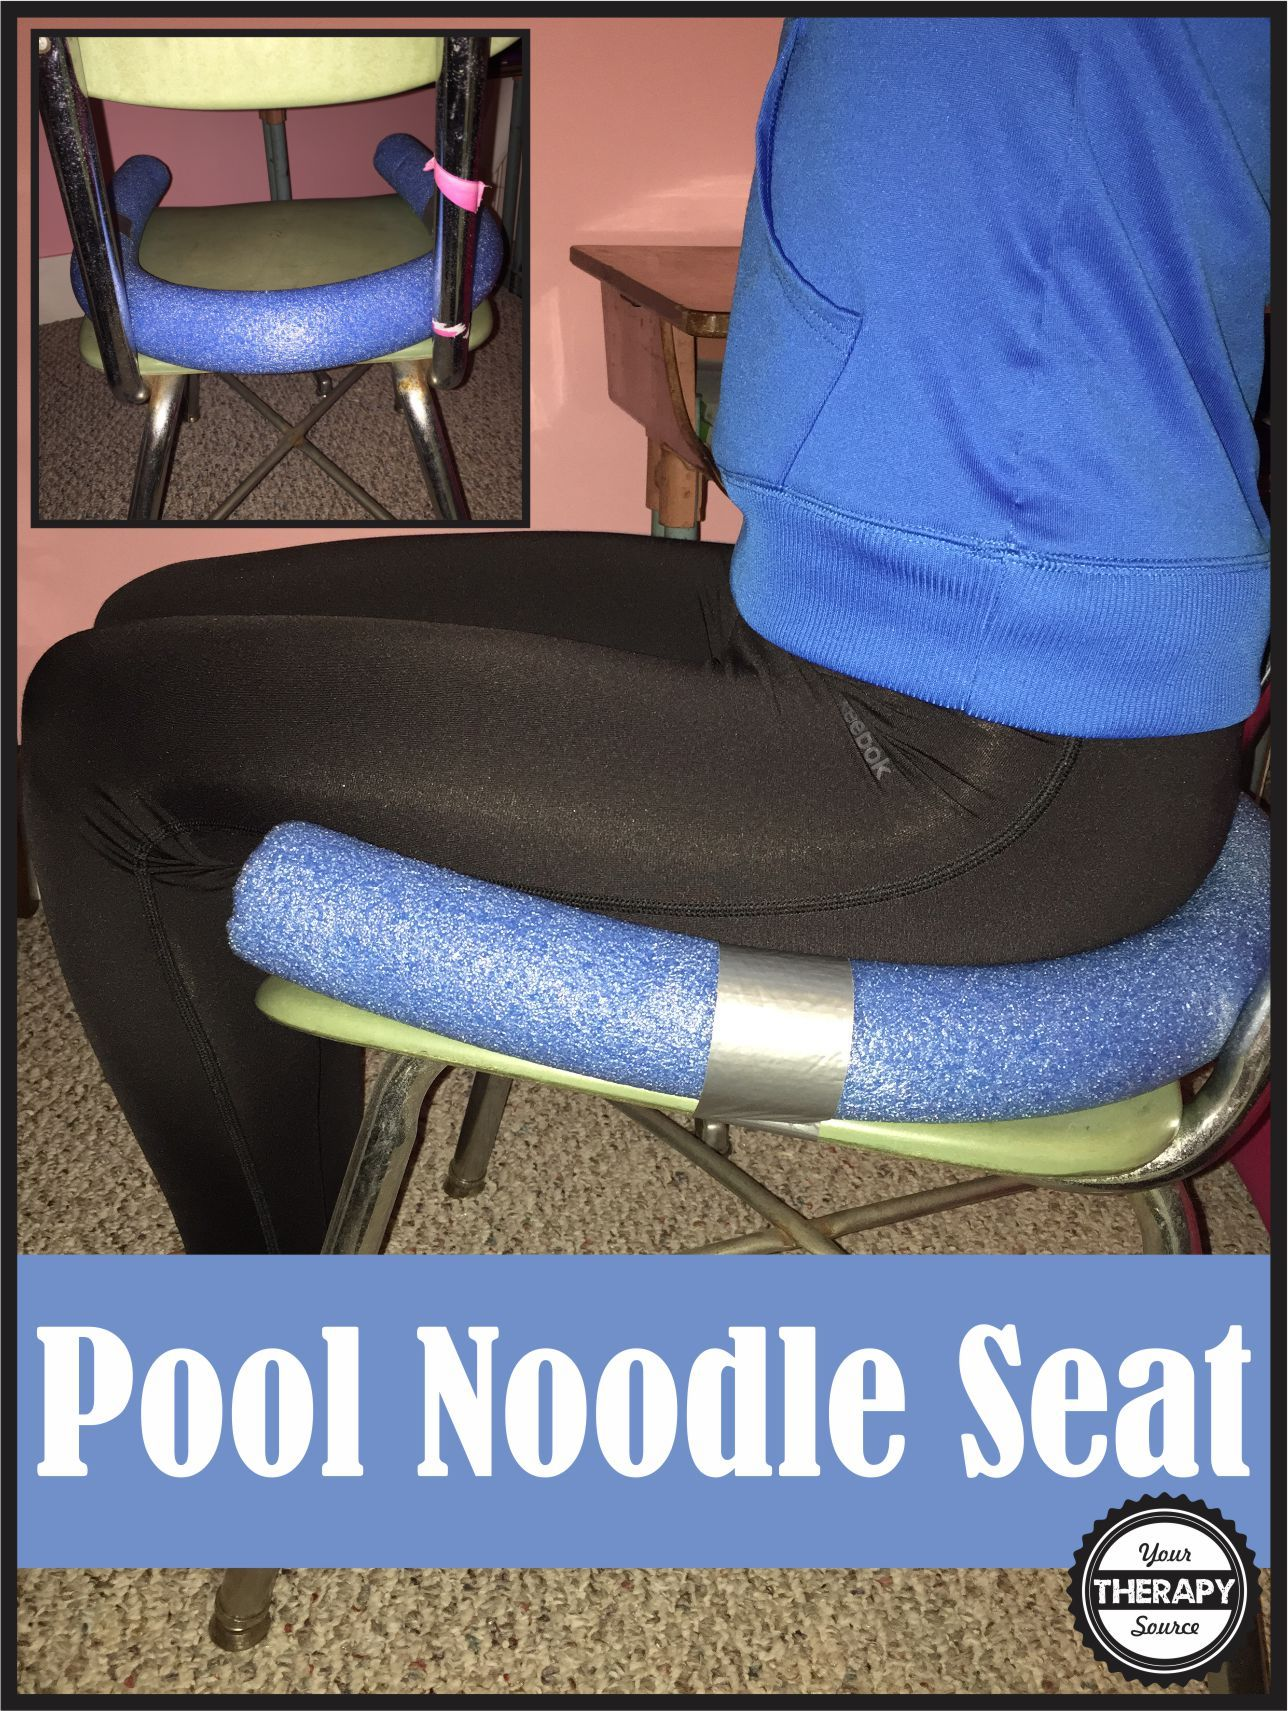 Pool Noodle Seat super simple and cheap to add just a little